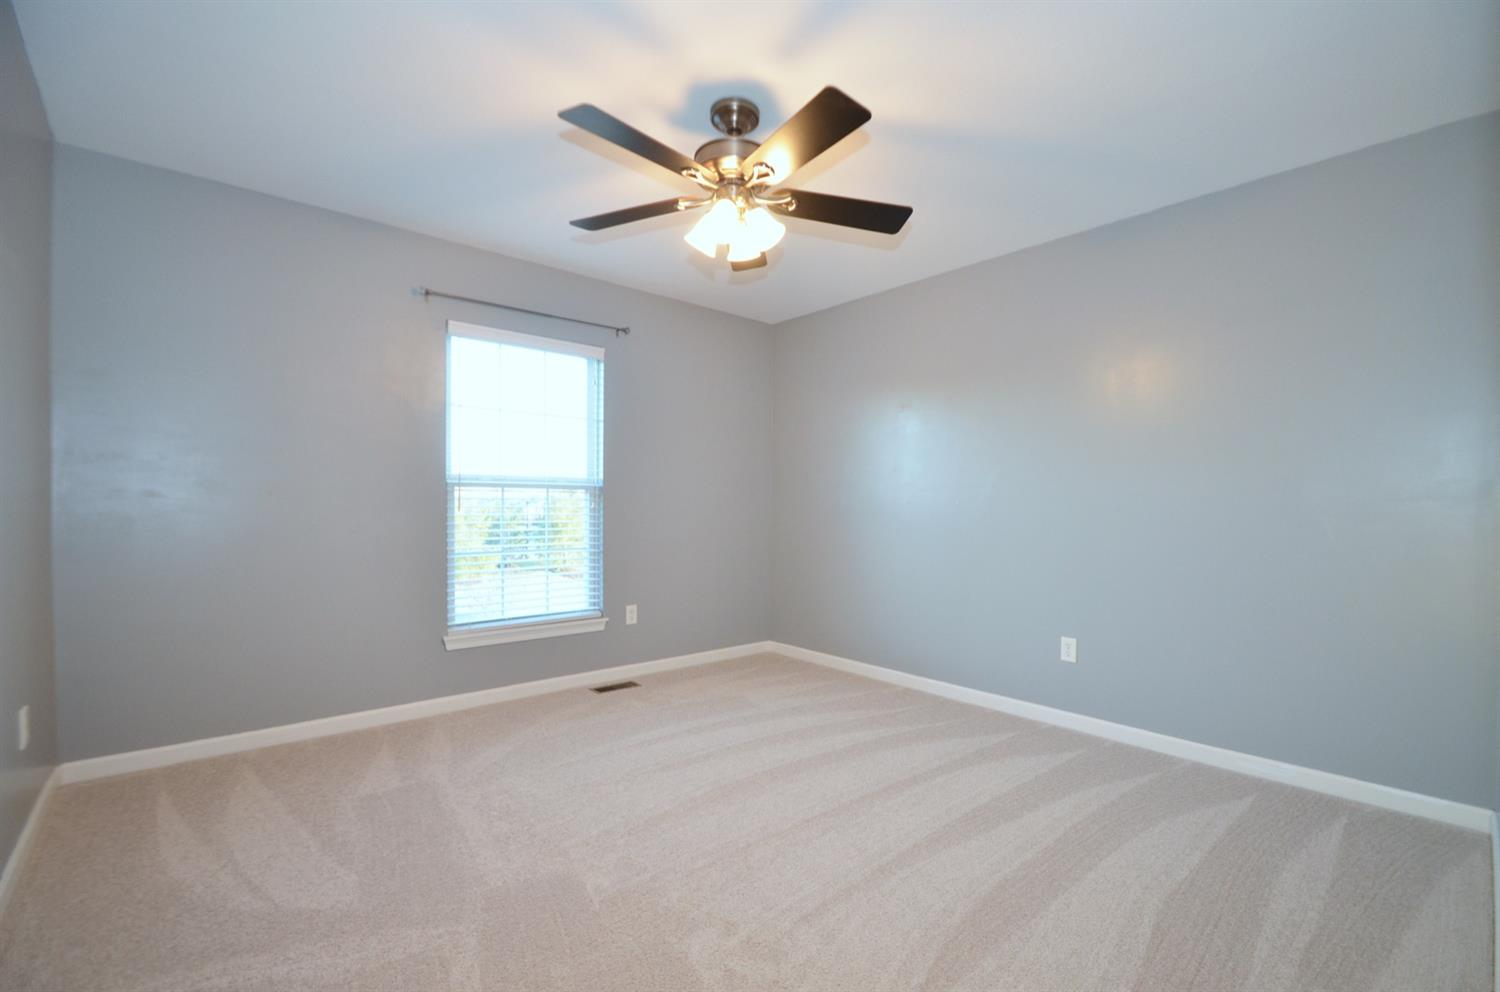 Bedroom 1. Each of the home's four spacious bedrooms feature ceiling fans and walk-in closets!